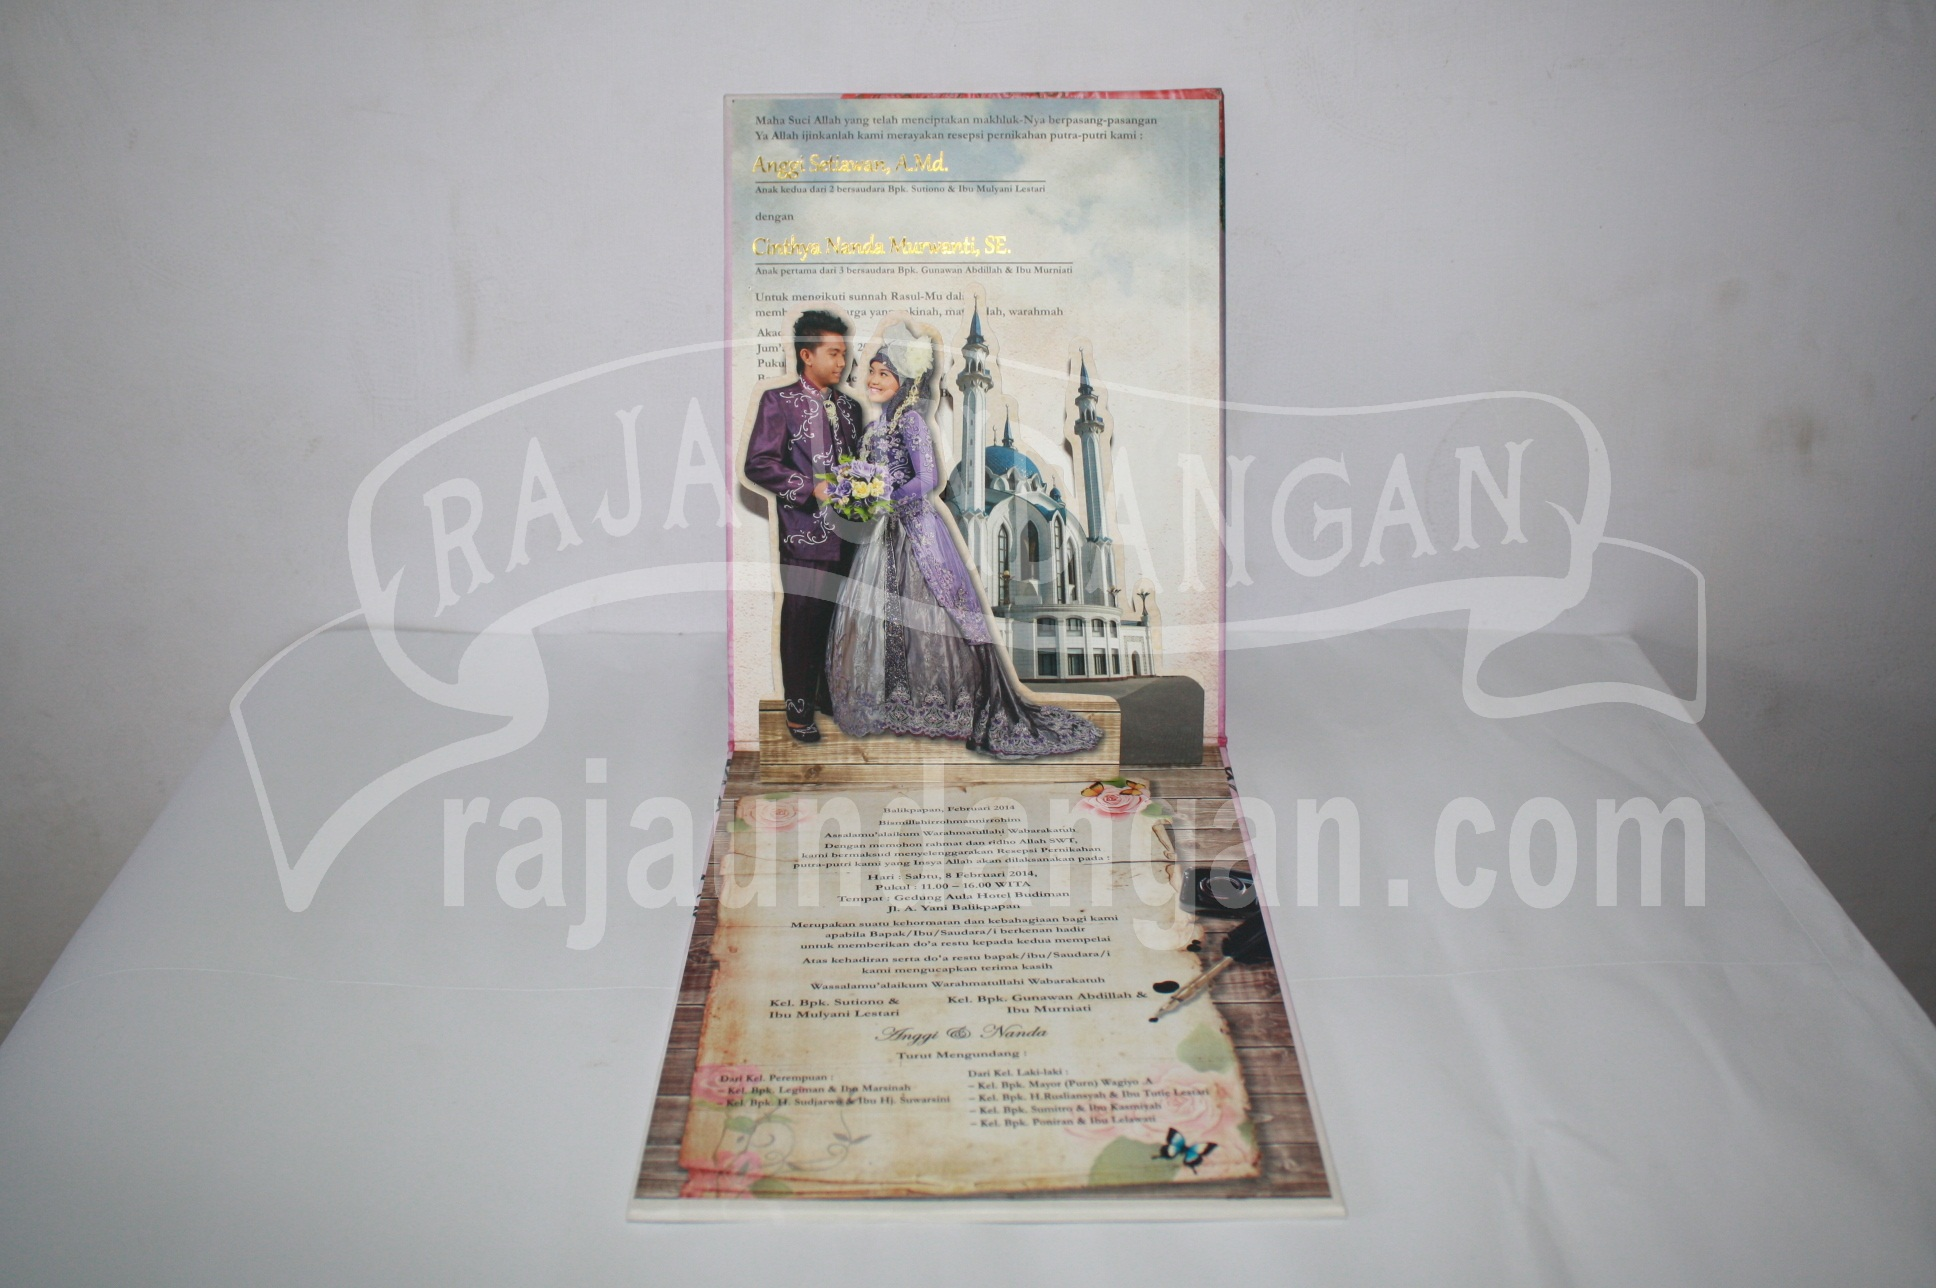 Undangan Pernikahan Hardcover Pop Up Pakai Amplop Anggi dan Nanda 2 - Percetakan Wedding Invitations Eksklusif di Dukuh Setro